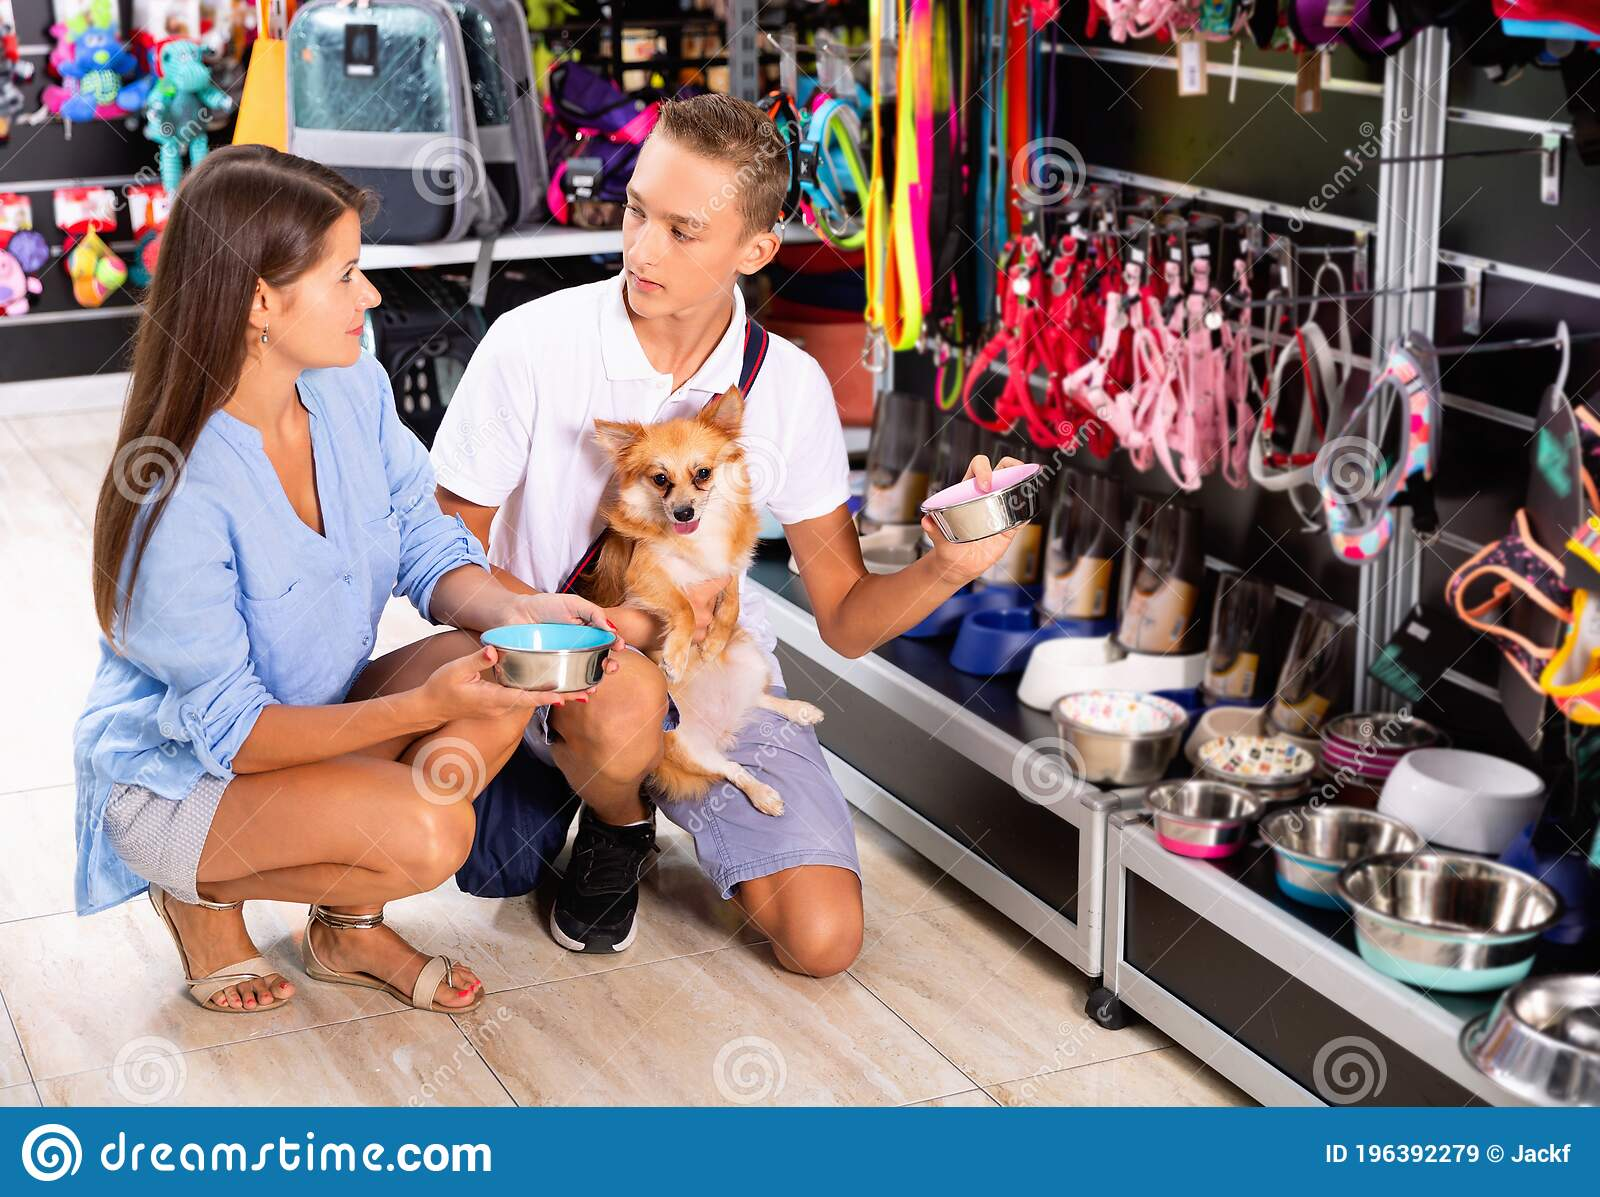 Cheerful Young Woman With Teenage Son And Cute Puppy Buying Dog Accessories In Store Stock Image Image Of Indoors Retail 196392279